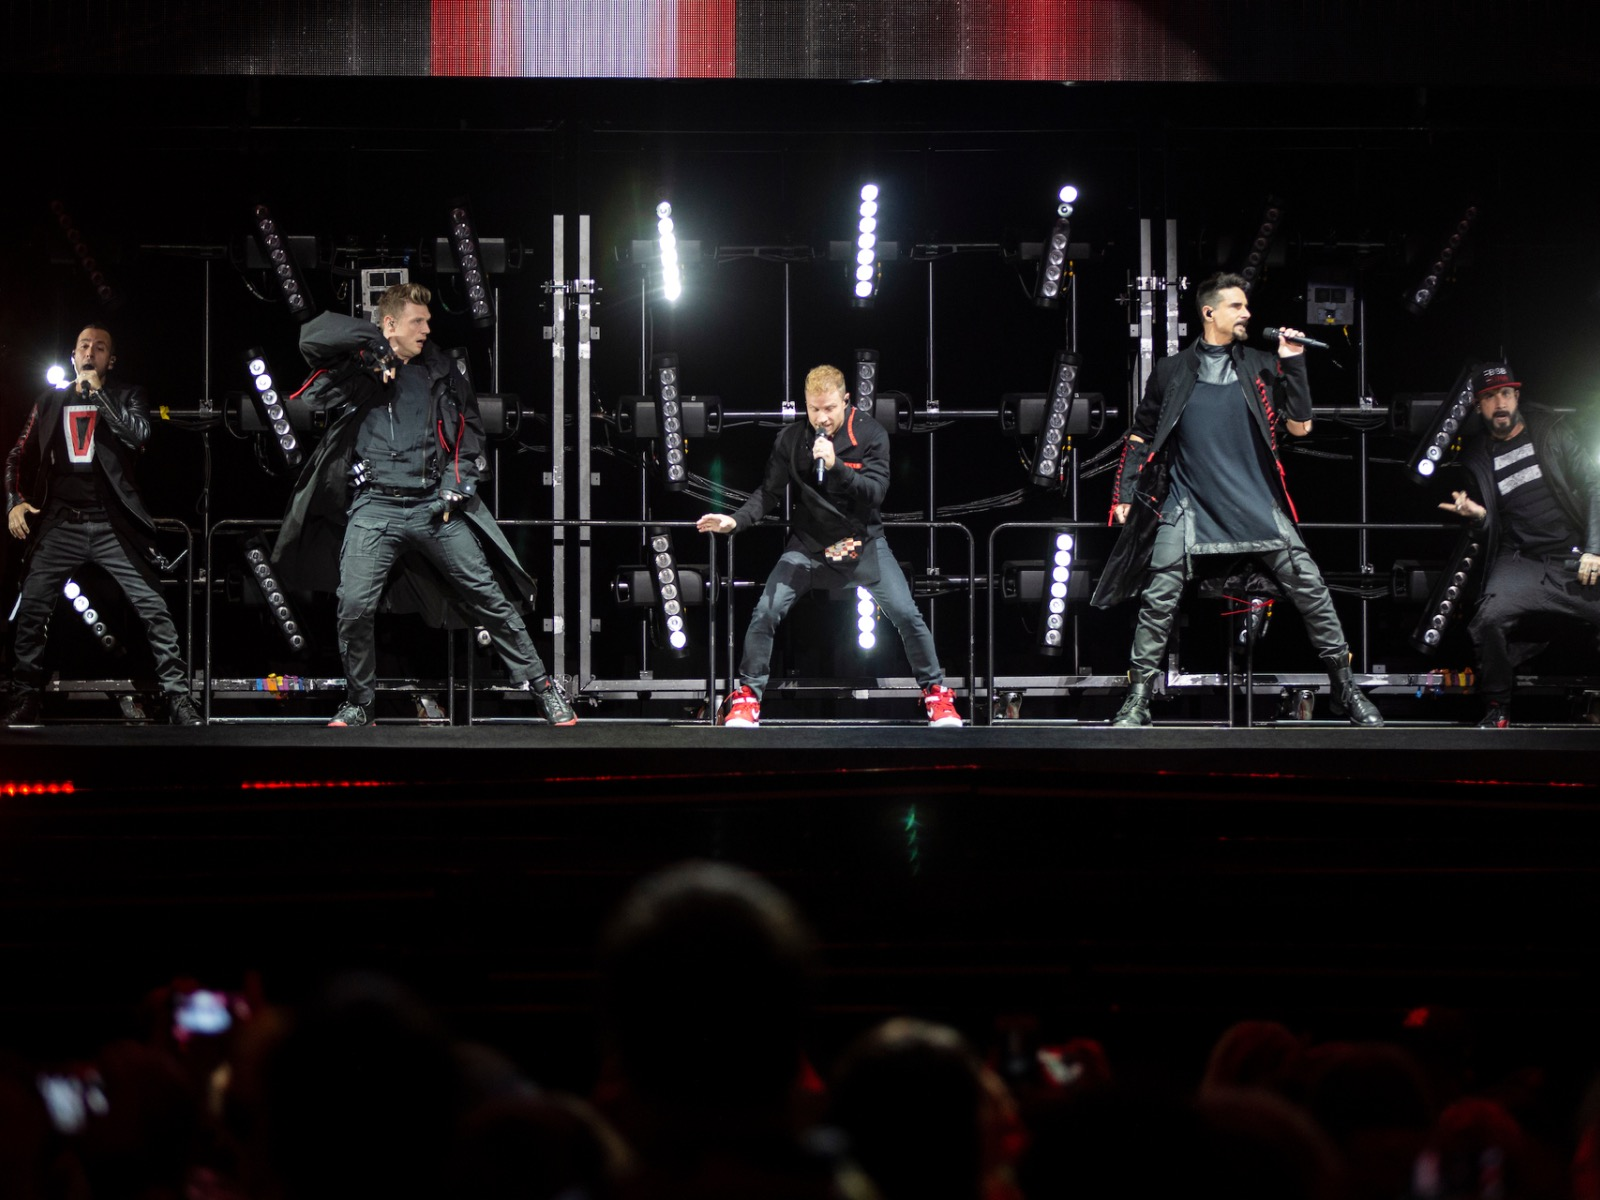 8 reasons why you shouldn't have missed the Backstreet Boys at Fiserv Forum